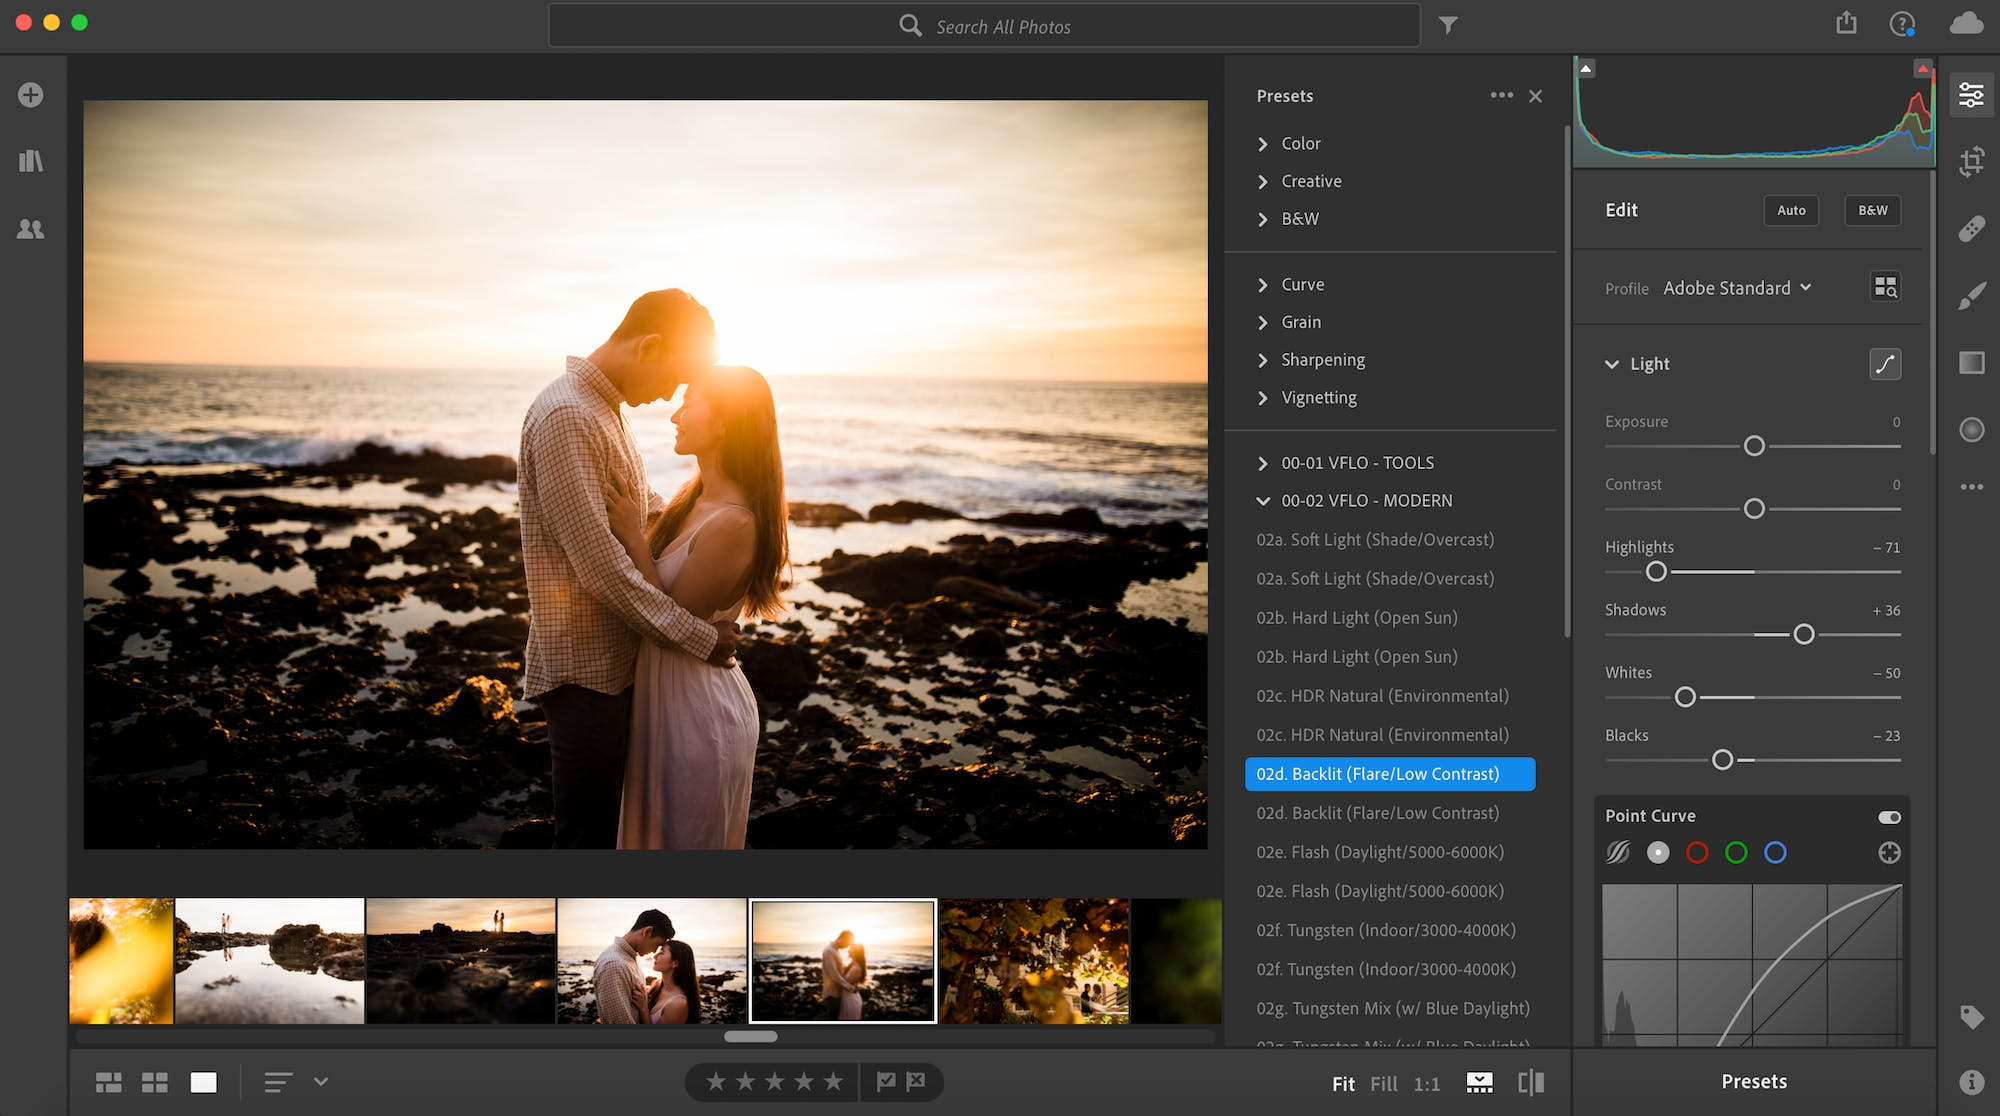 Use a consistent editing style to create beautiful photo slideshows